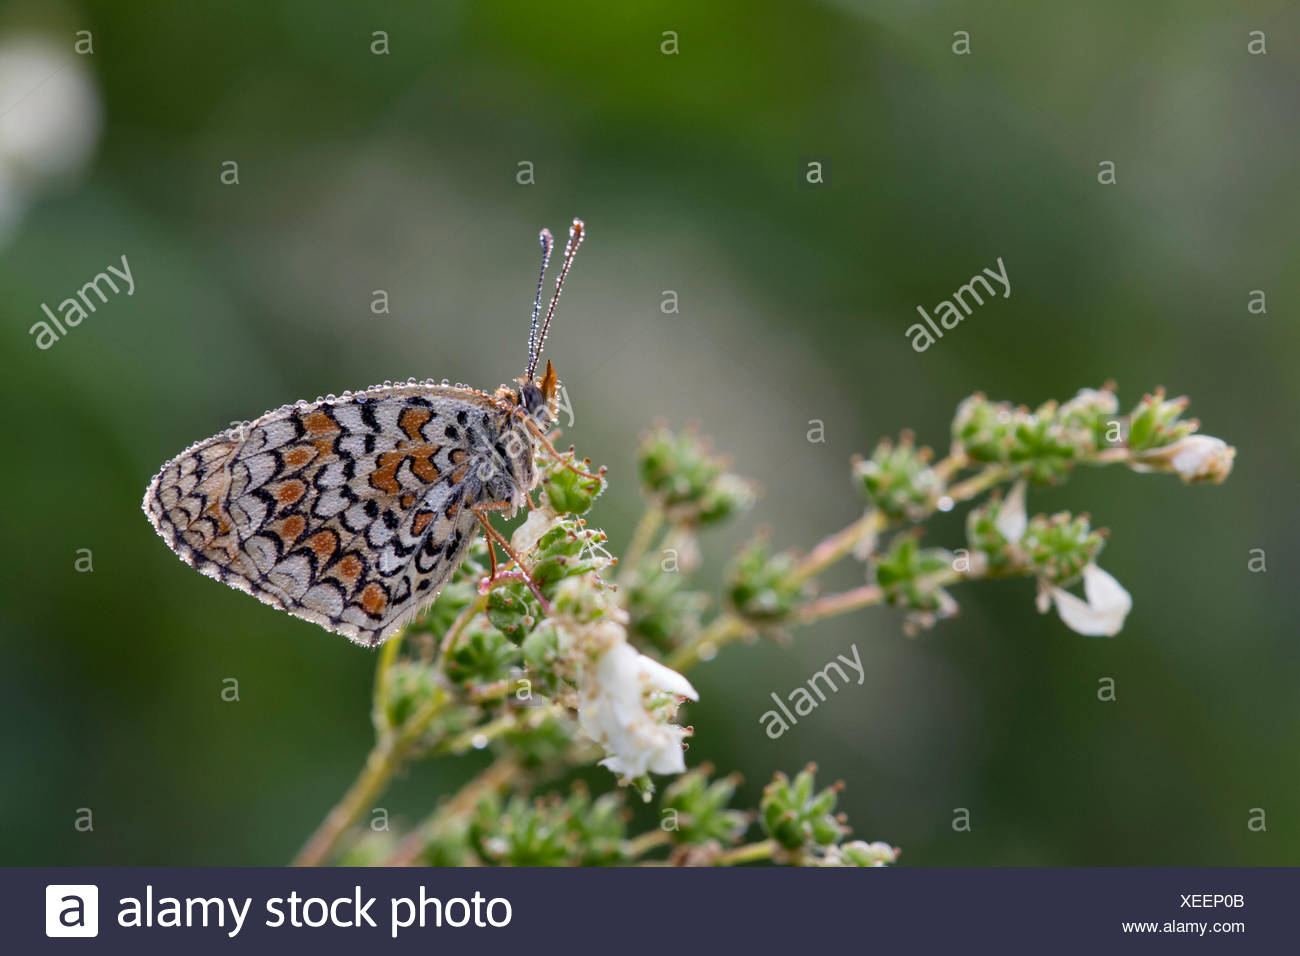 A butterlfy melitea, which is covered by morning dew, is waiting for the heat to fly. Lombardy, Italy - Stock Image